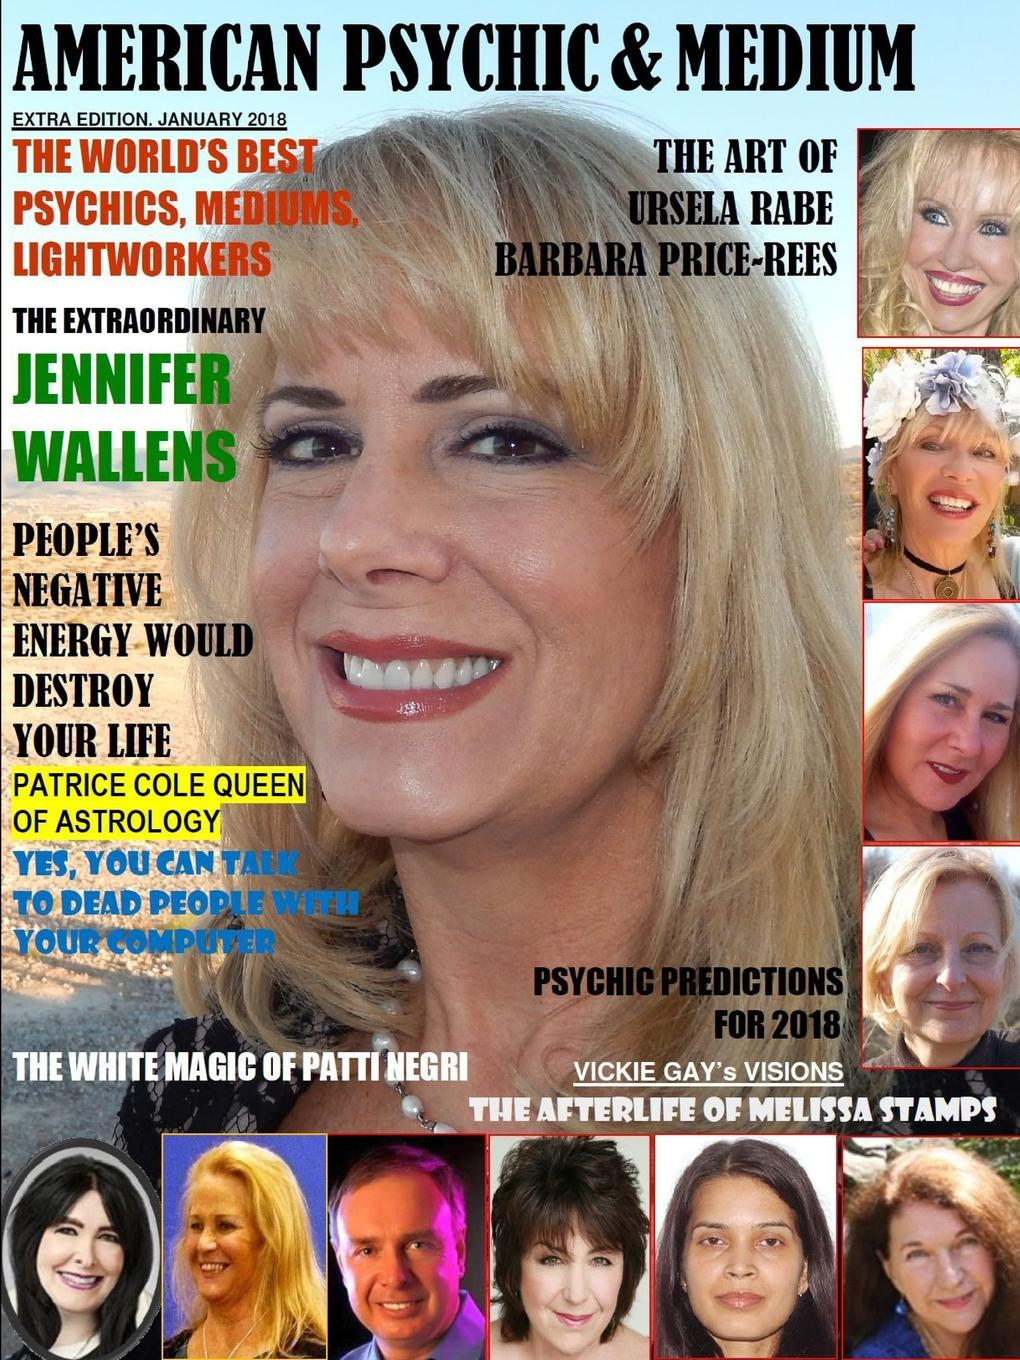 Maximillien de Lafayette American Psychic . Medium Magazine, Extra Edition January 2018.. set wonders in the new year s plaid